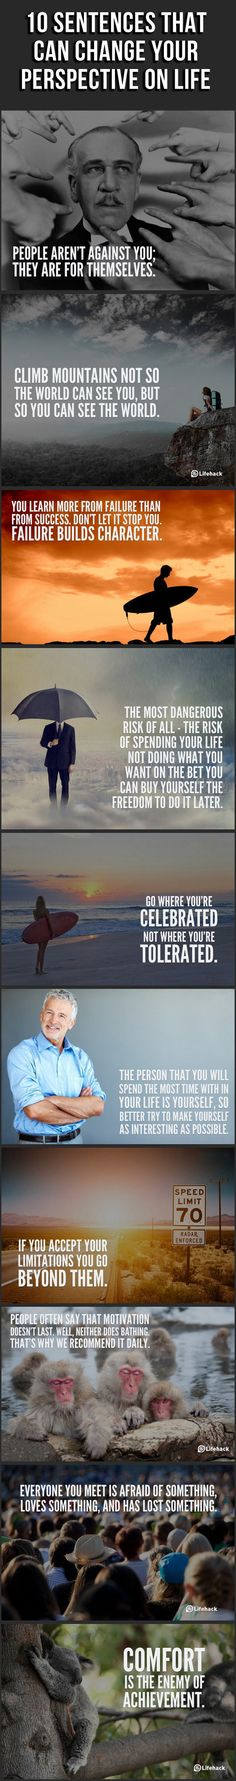 10 sentences that can change your life!